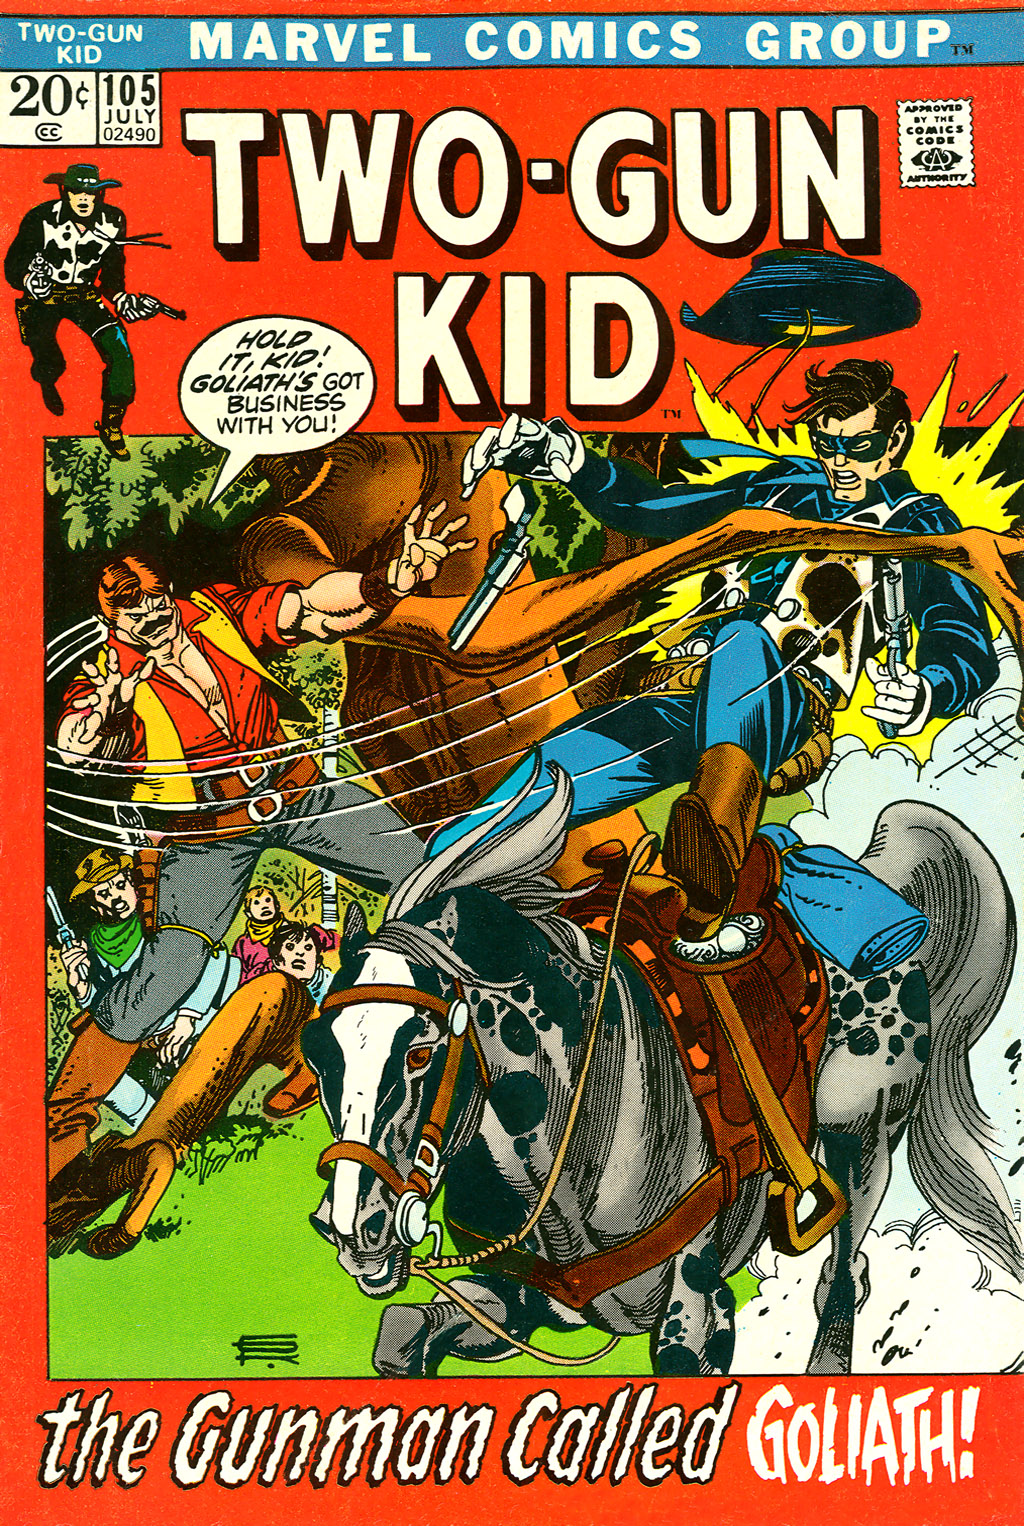 Read online Two-Gun Kid comic -  Issue #105 - 1